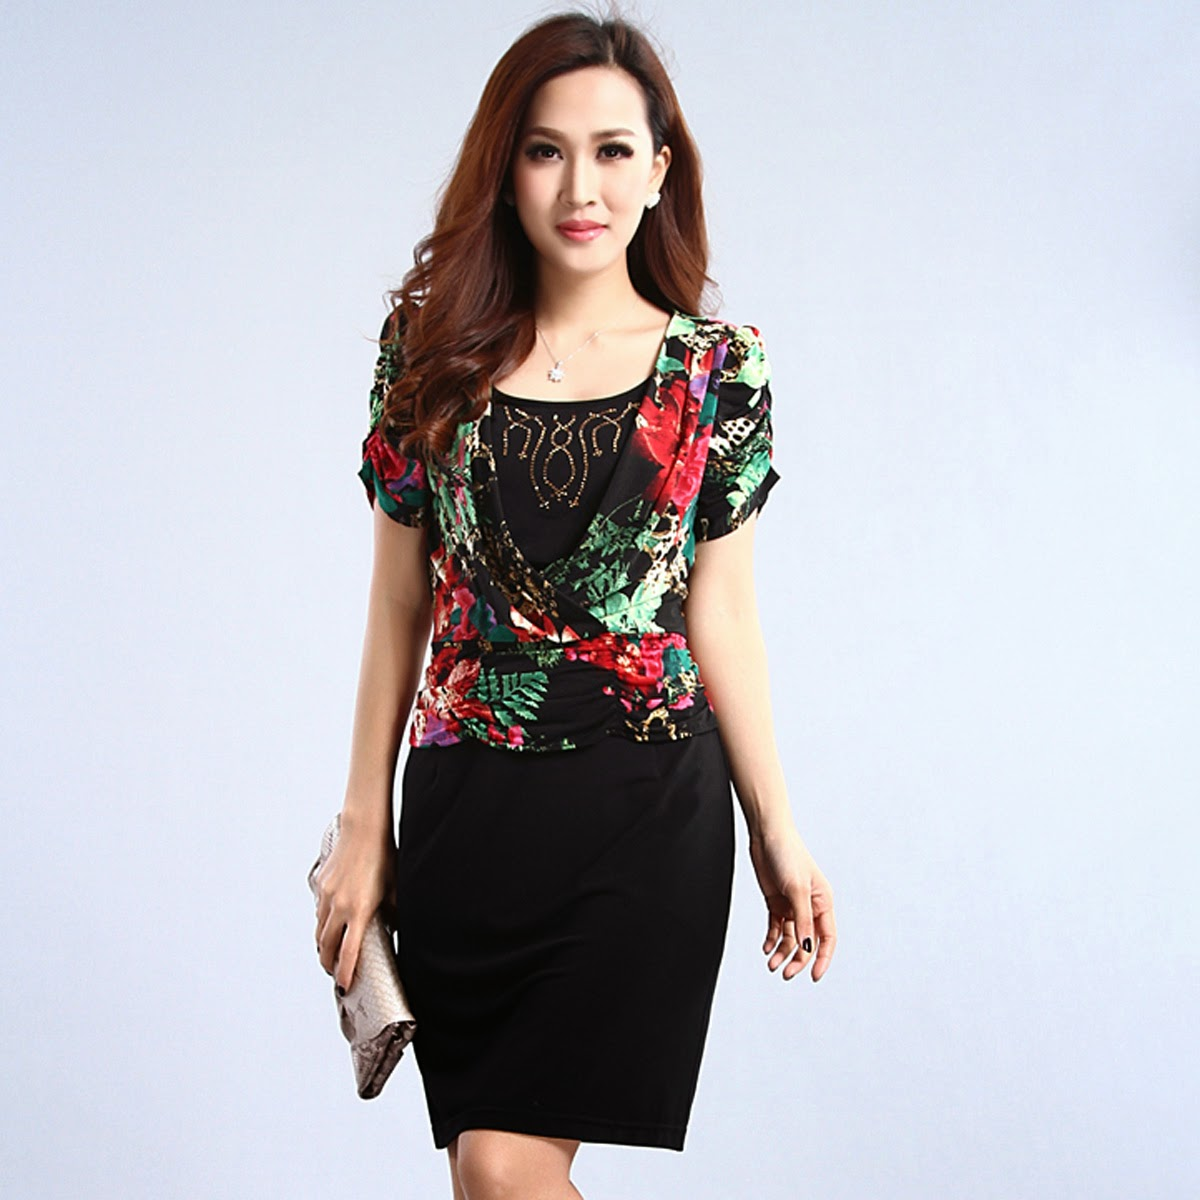 model baju batik wanita dress